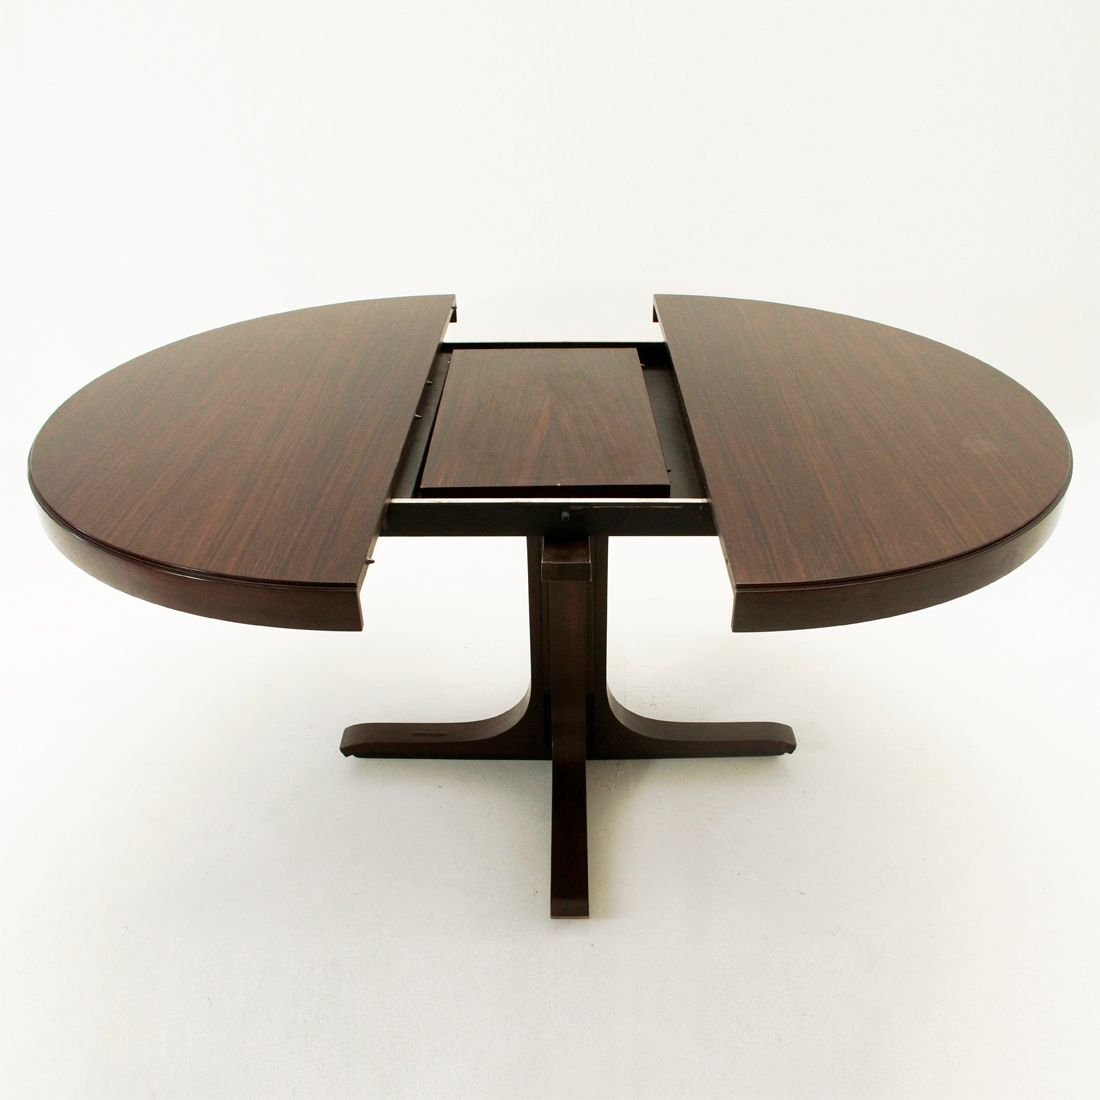 Extensible dining table by giovanni ausenda for stilwood 1963 for sale at pa - Table noire extensible ...